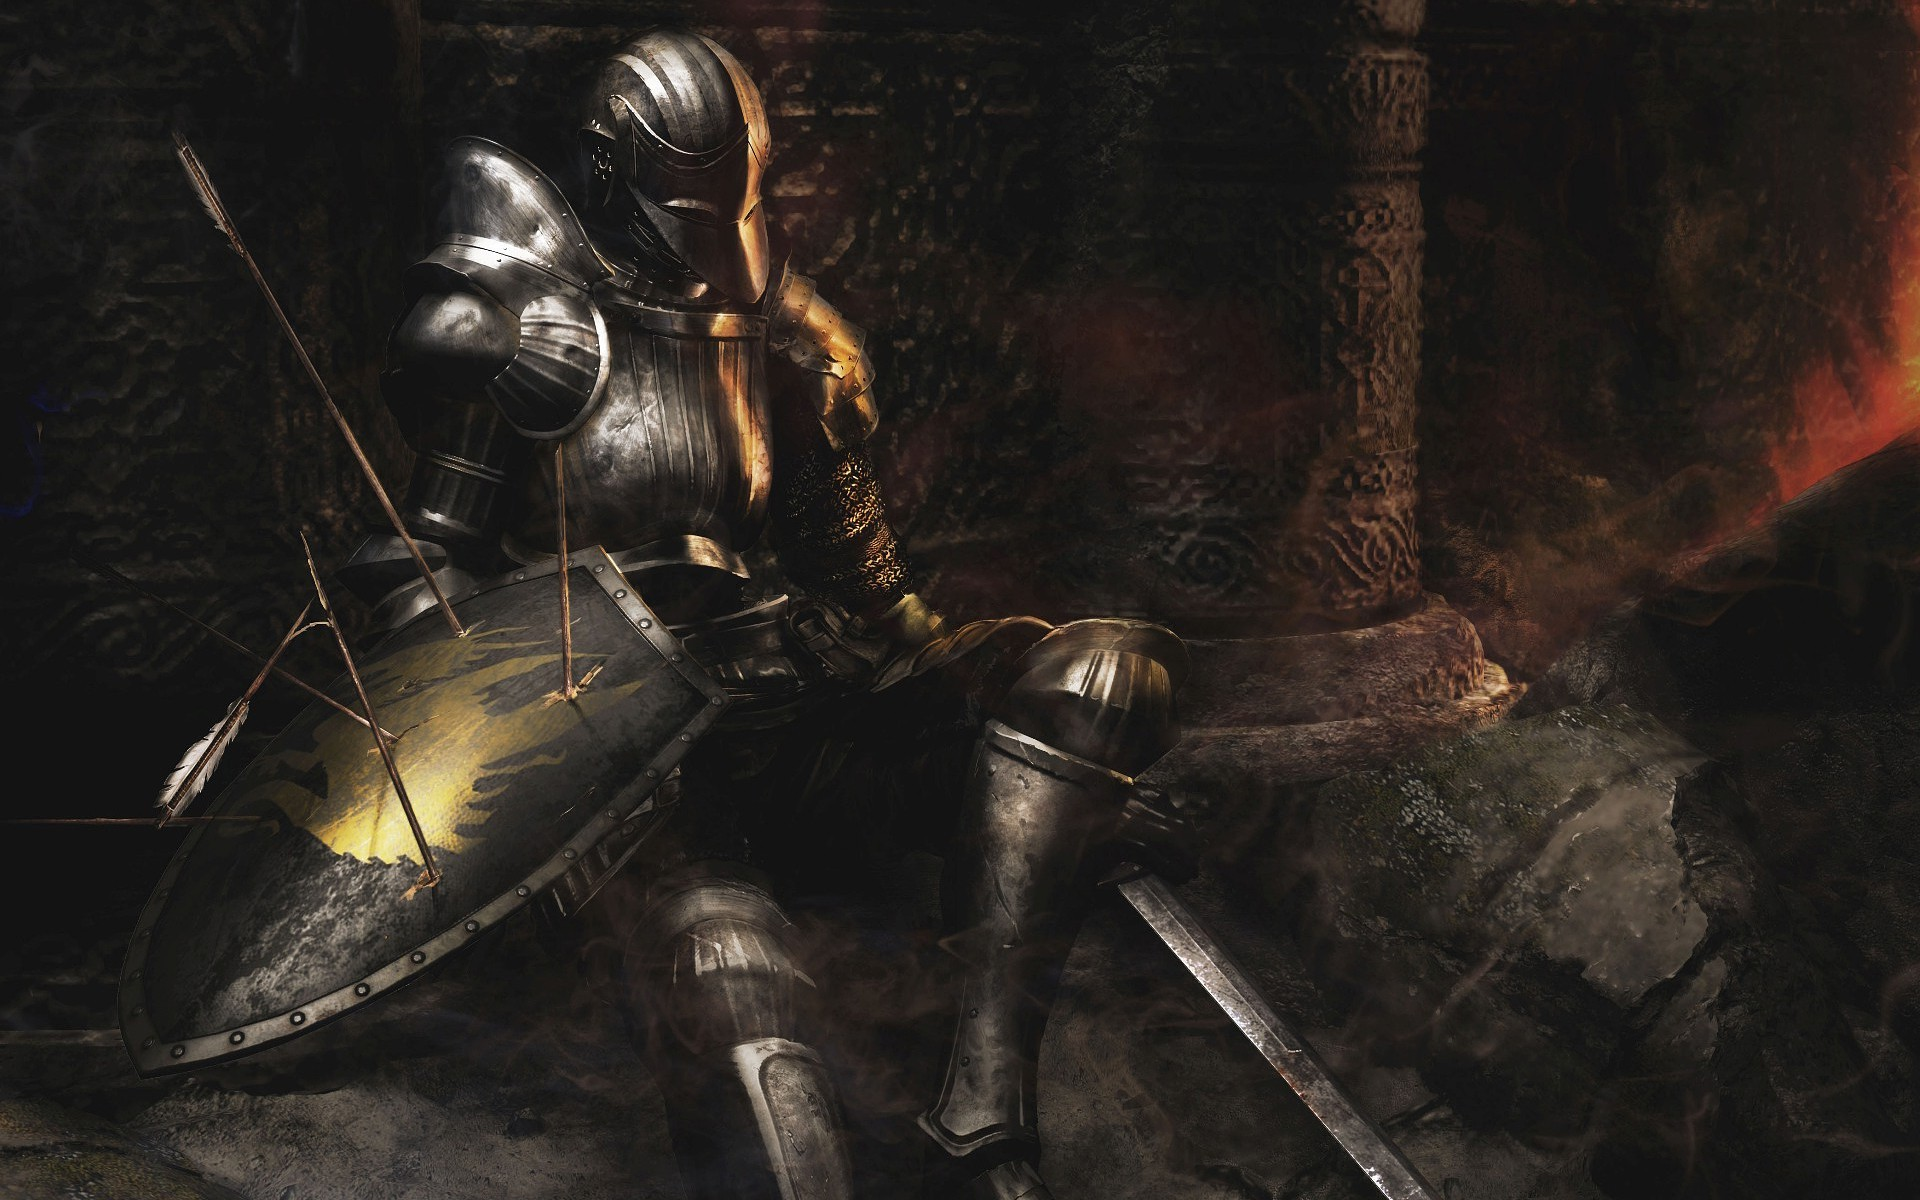 demons-souls-game-hd-wallpaper-1920x1200